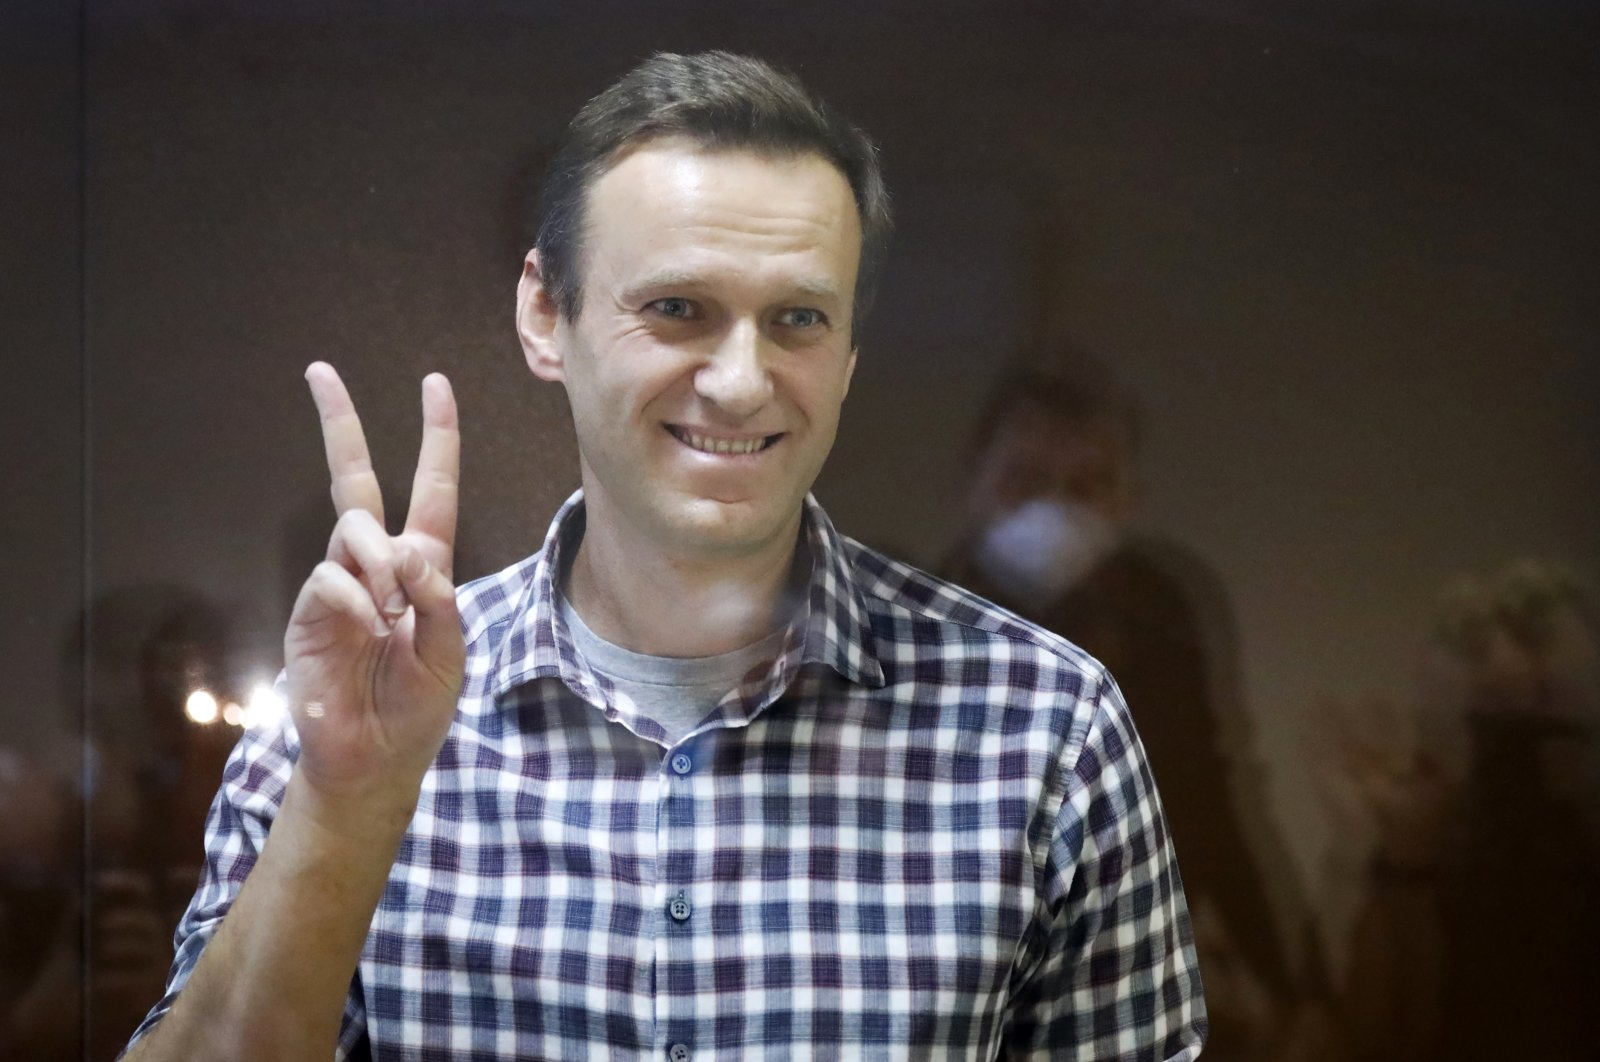 Russian opposition leader Alexei Navalny stands in a cage in the Babuskinsky District Court in Moscow, Russia, Feb. 20, 2021. (AP Photo)